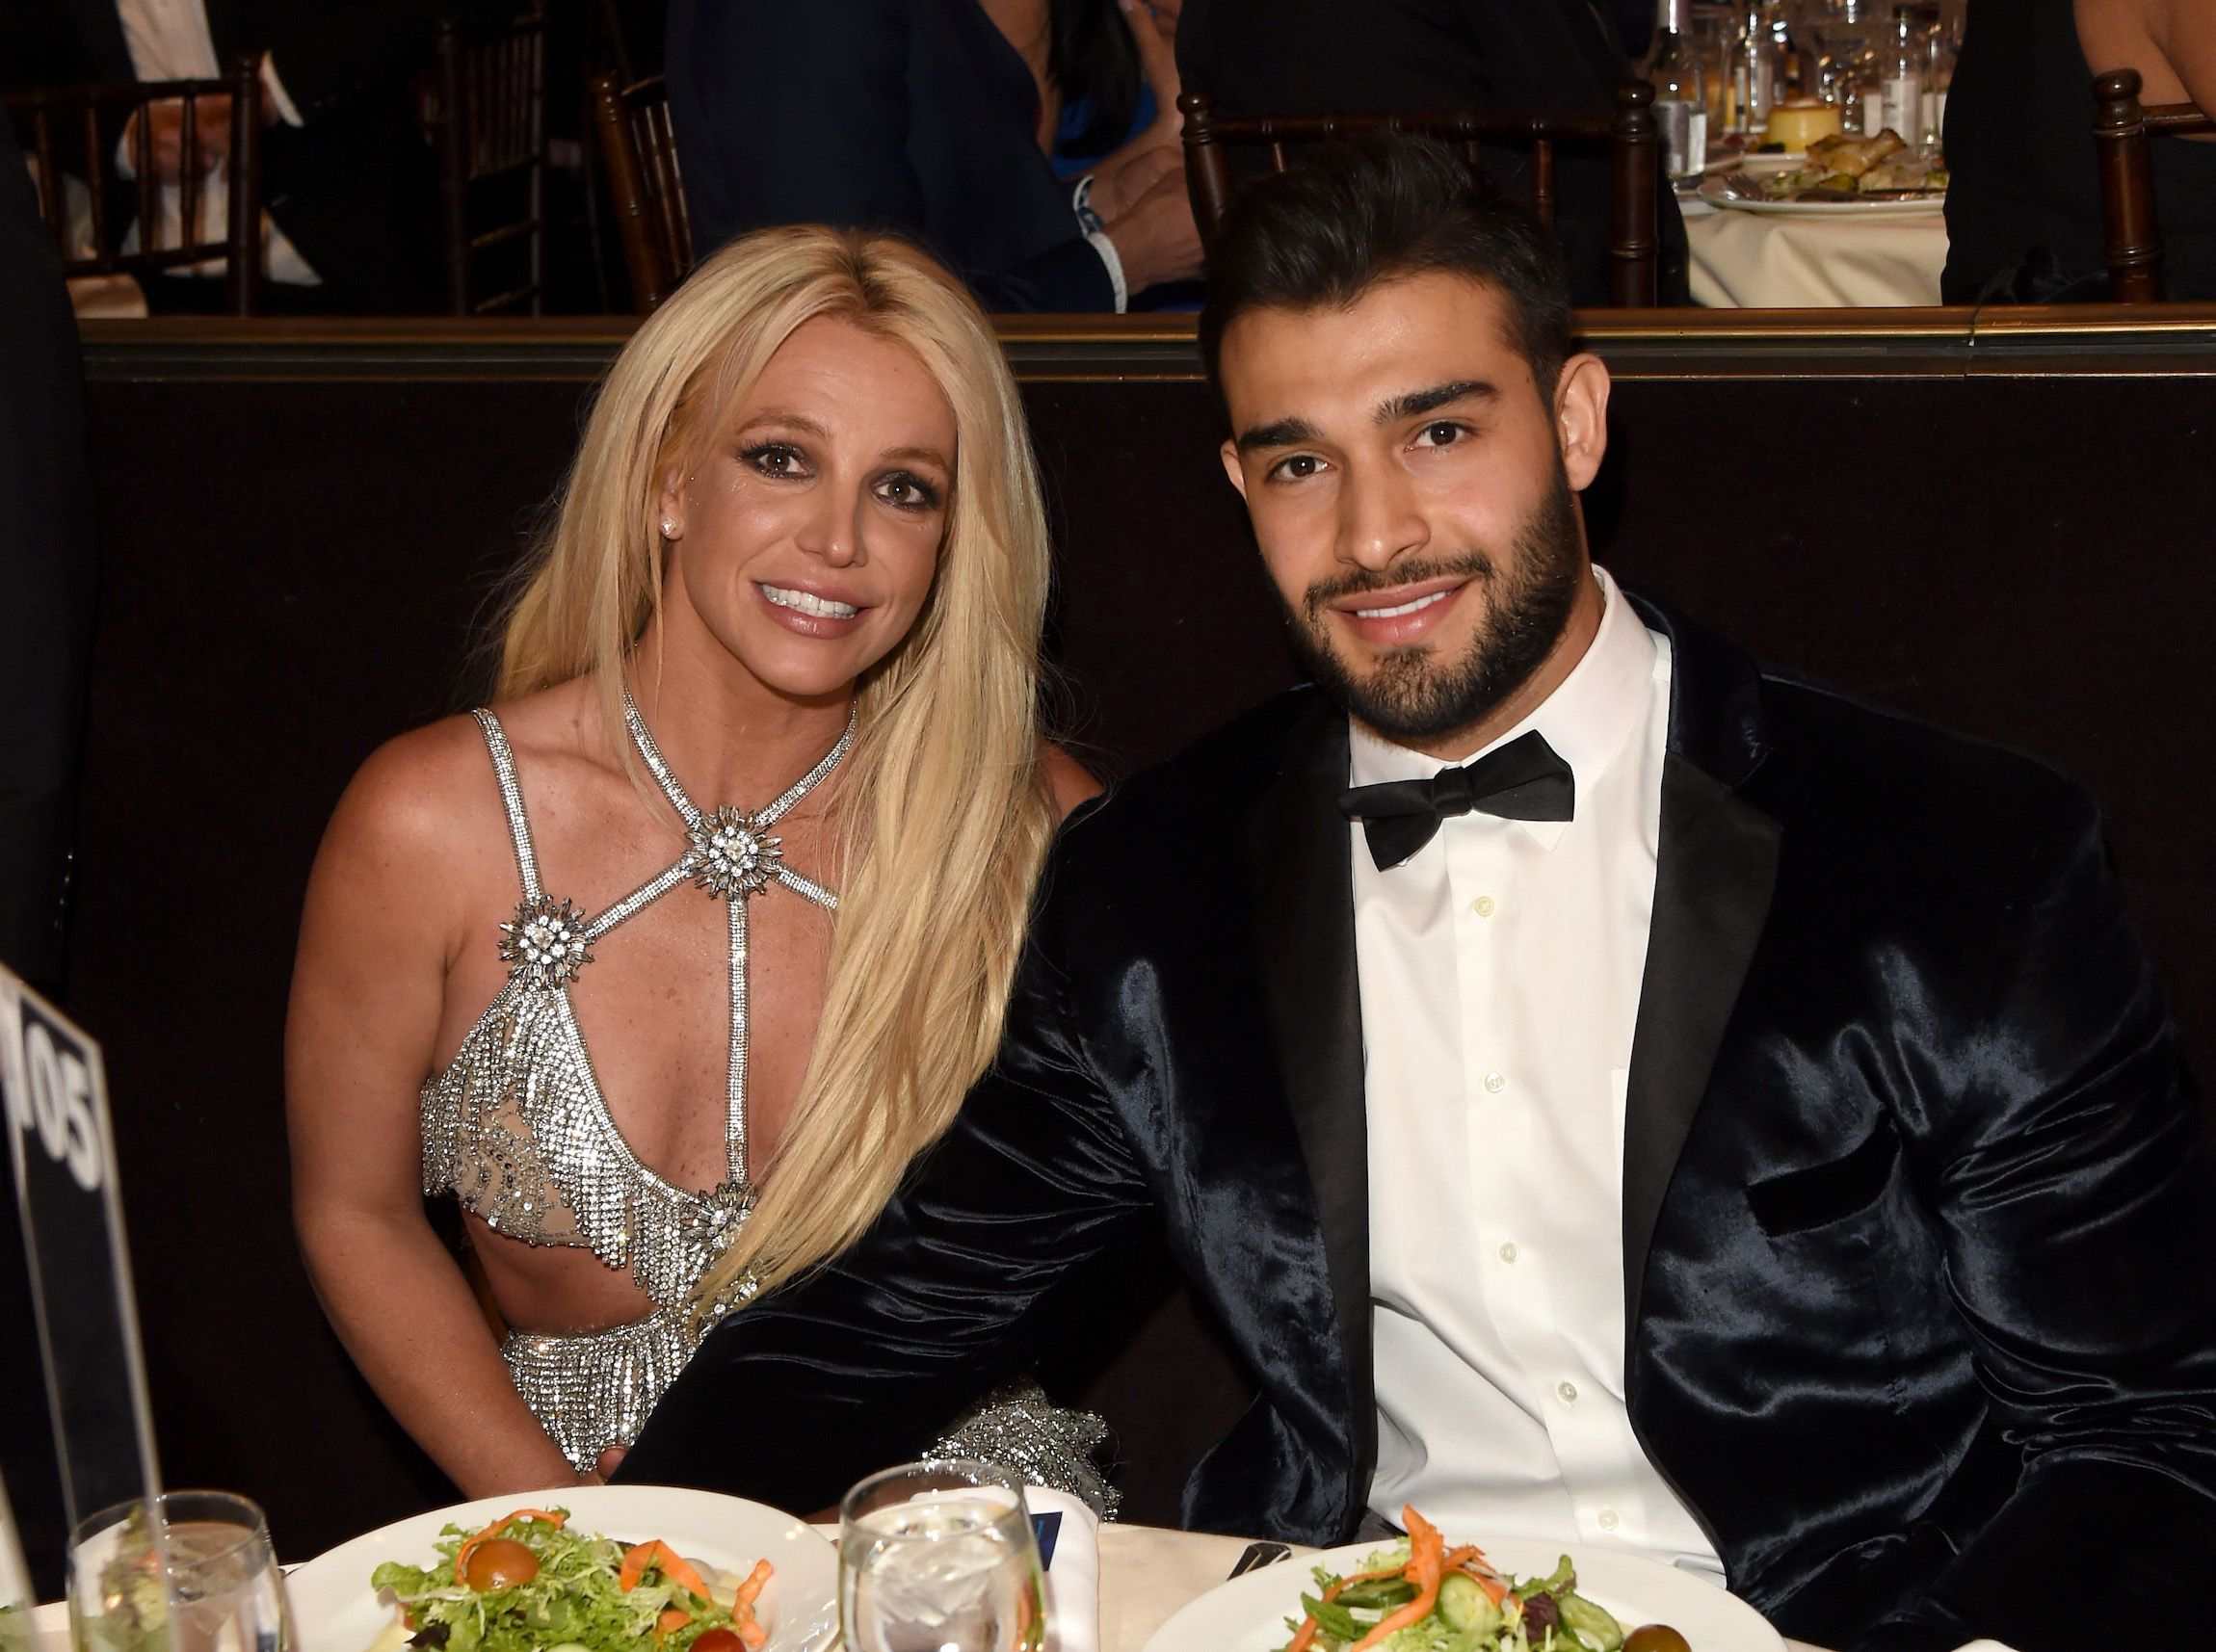 Britney Spears and Sam Asghari together